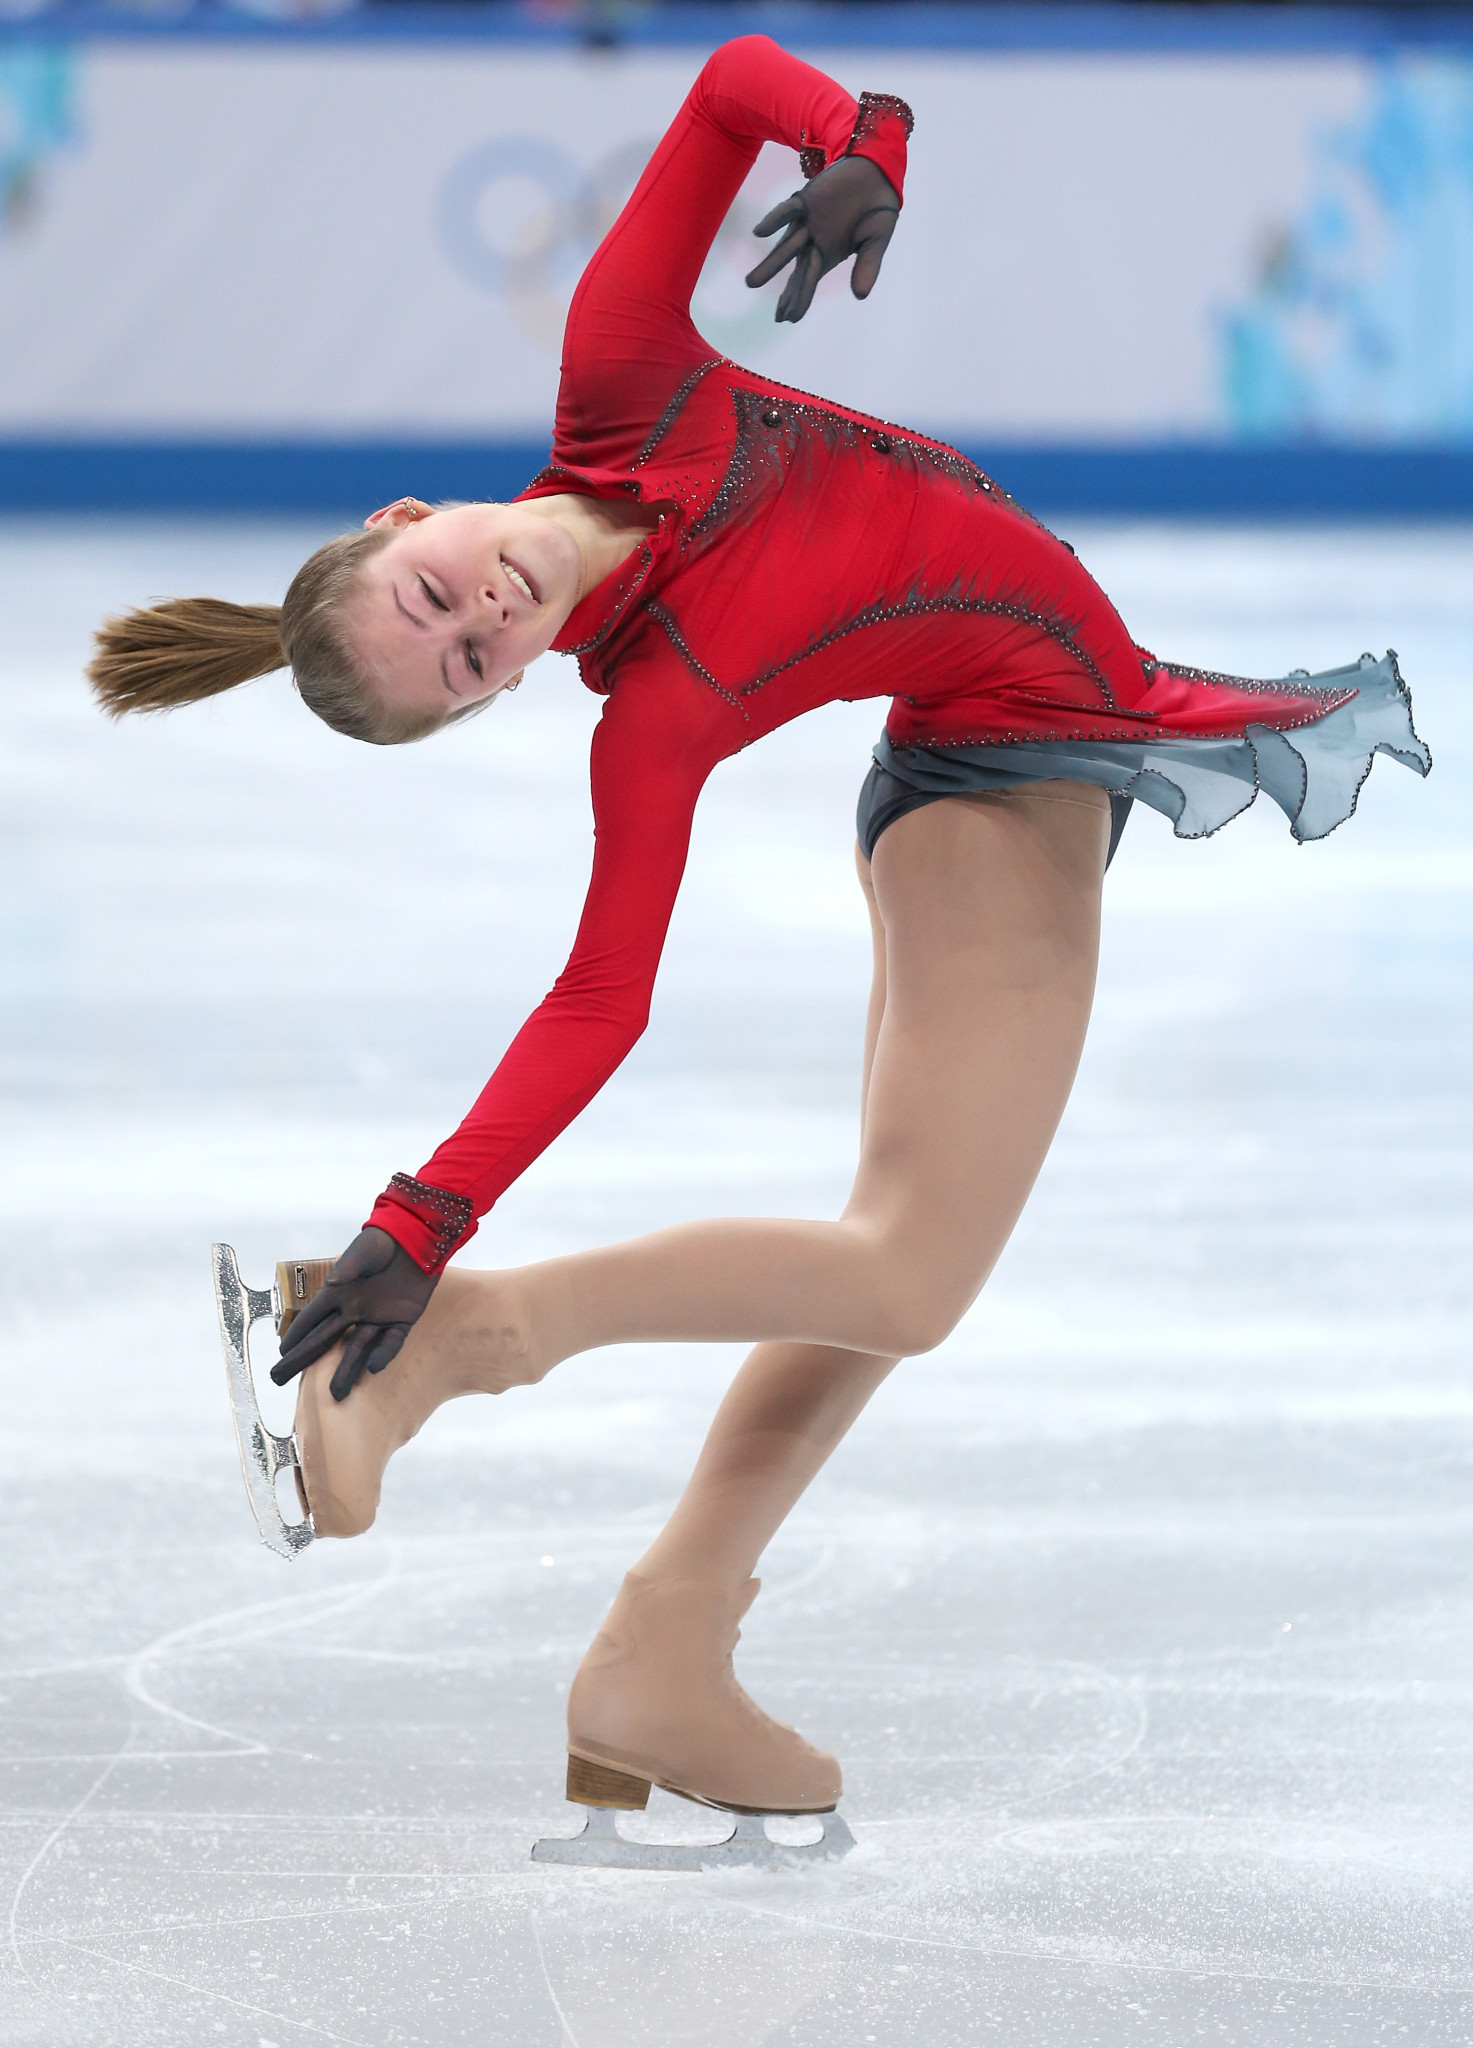 Yulia Lipnitskaya became the youngest Olympic figure skating gold medallist in modern times when she helped Russia to the team title at Sochi 2014 ©Getty Images